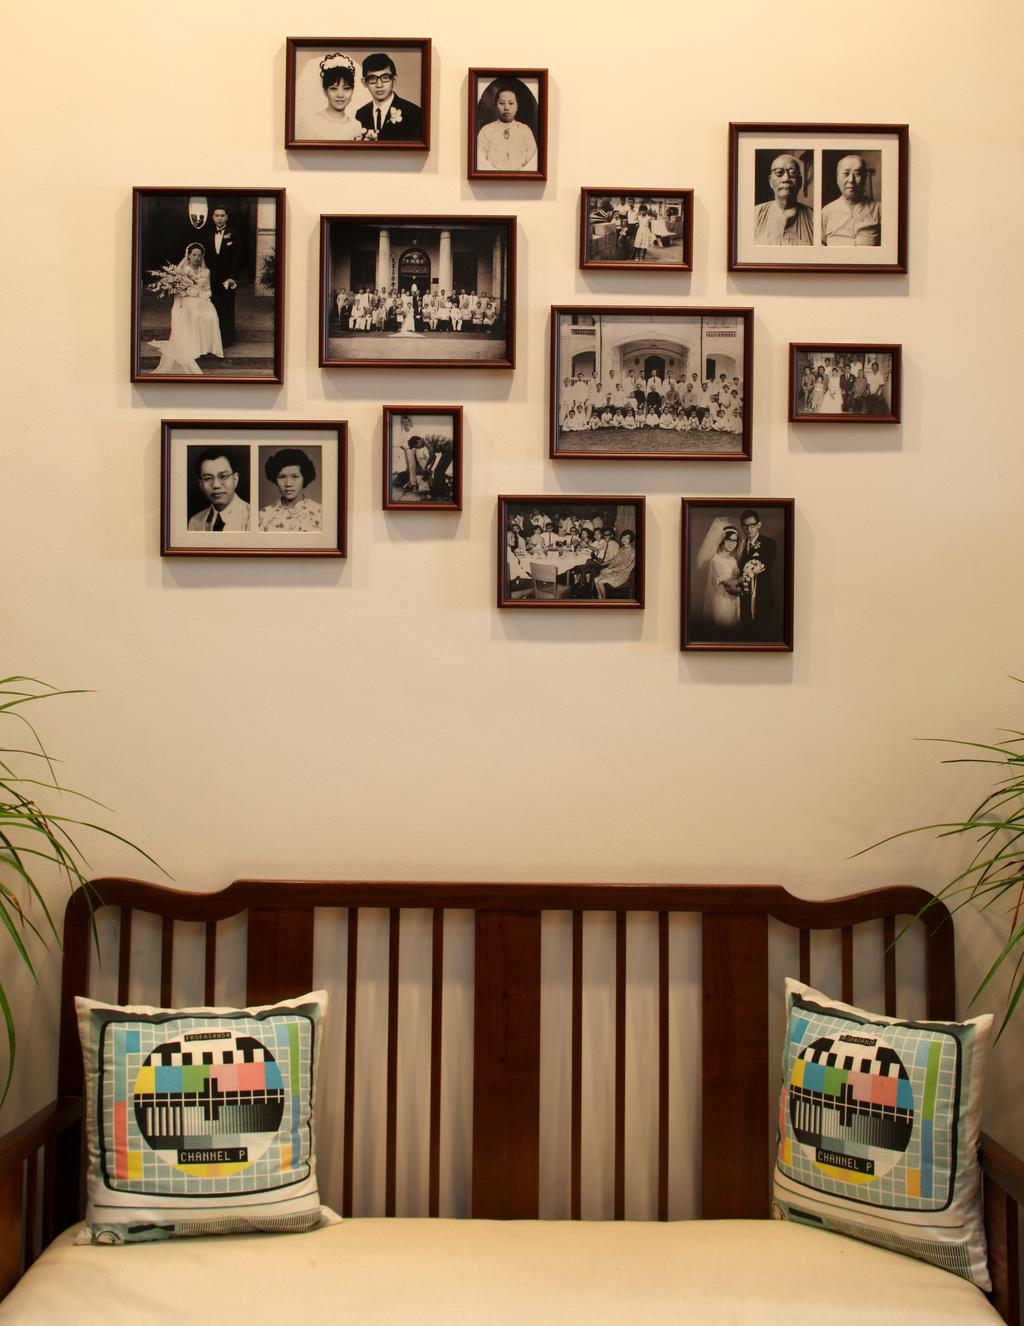 Traditional, Landed, Emerald House, Architect, Lekker Architects, Wall Portrait, Cushions, Colourful Cushions, Colorful Cushions, Cushioned Seats, Wooden Chair, Flora, Jar, Plant, Potted Plant, Pottery, Vase, Art, Wall, Chair, Furniture, Molding, Painting, Art Gallery